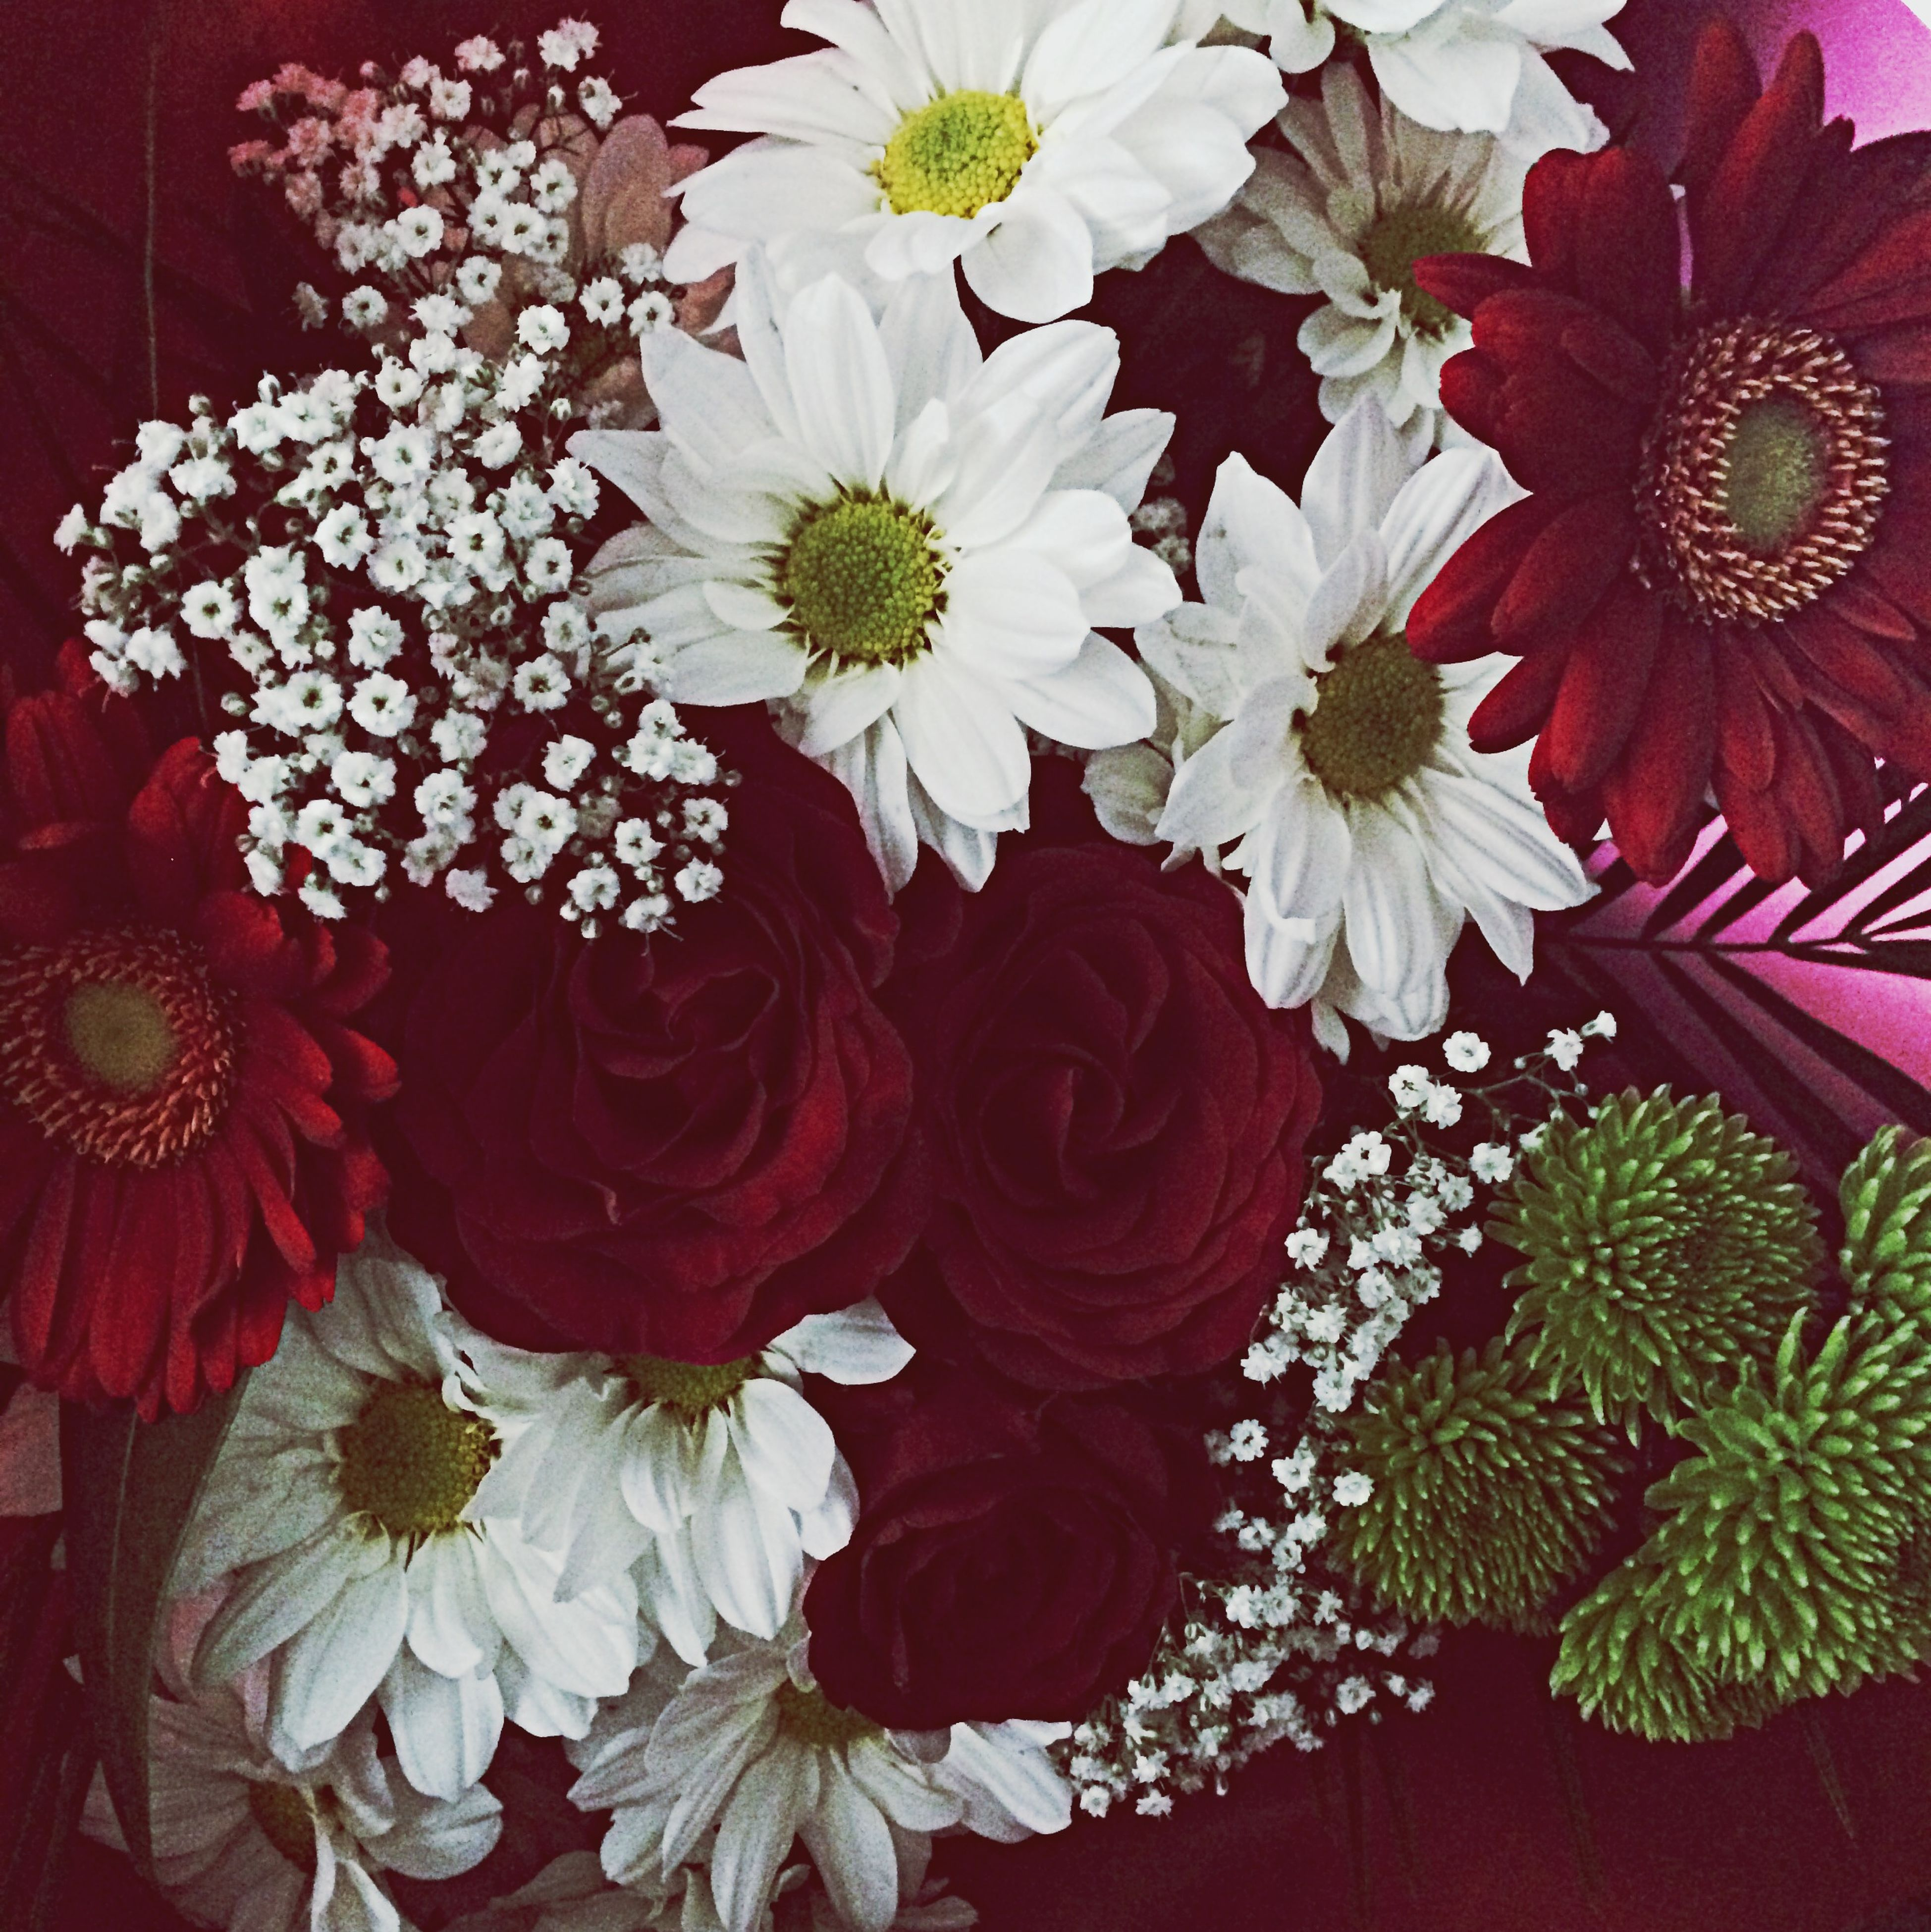 flower, freshness, petal, red, fragility, indoors, flower head, growth, beauty in nature, high angle view, nature, bouquet, plant, white color, blooming, bunch of flowers, full frame, no people, blossom, close-up